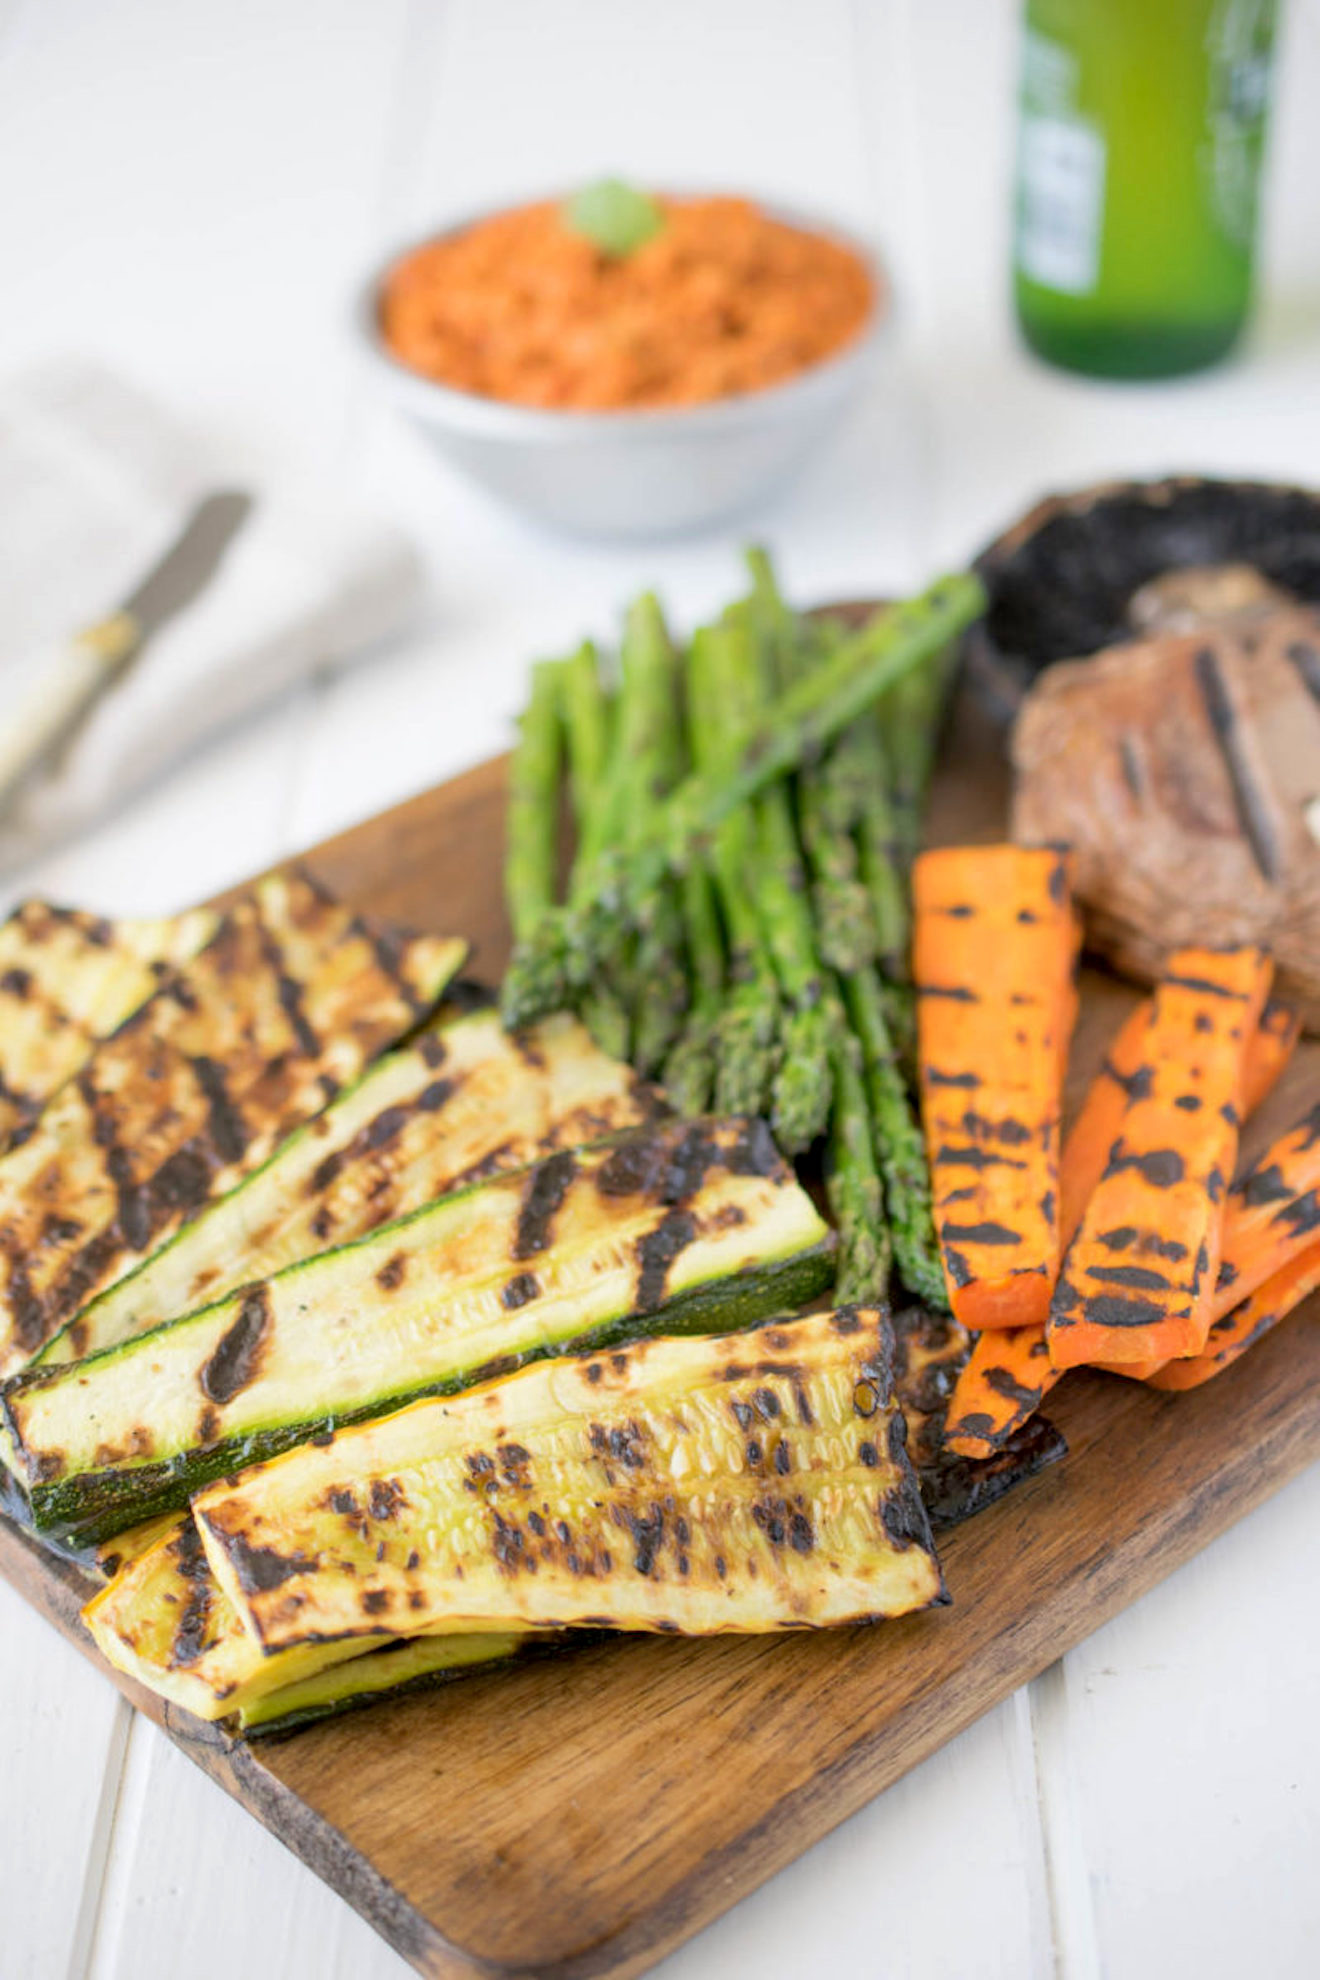 Grilled zucchini, carrots, asparagus and mushrooms on a serving board with sun-dried tomato dip